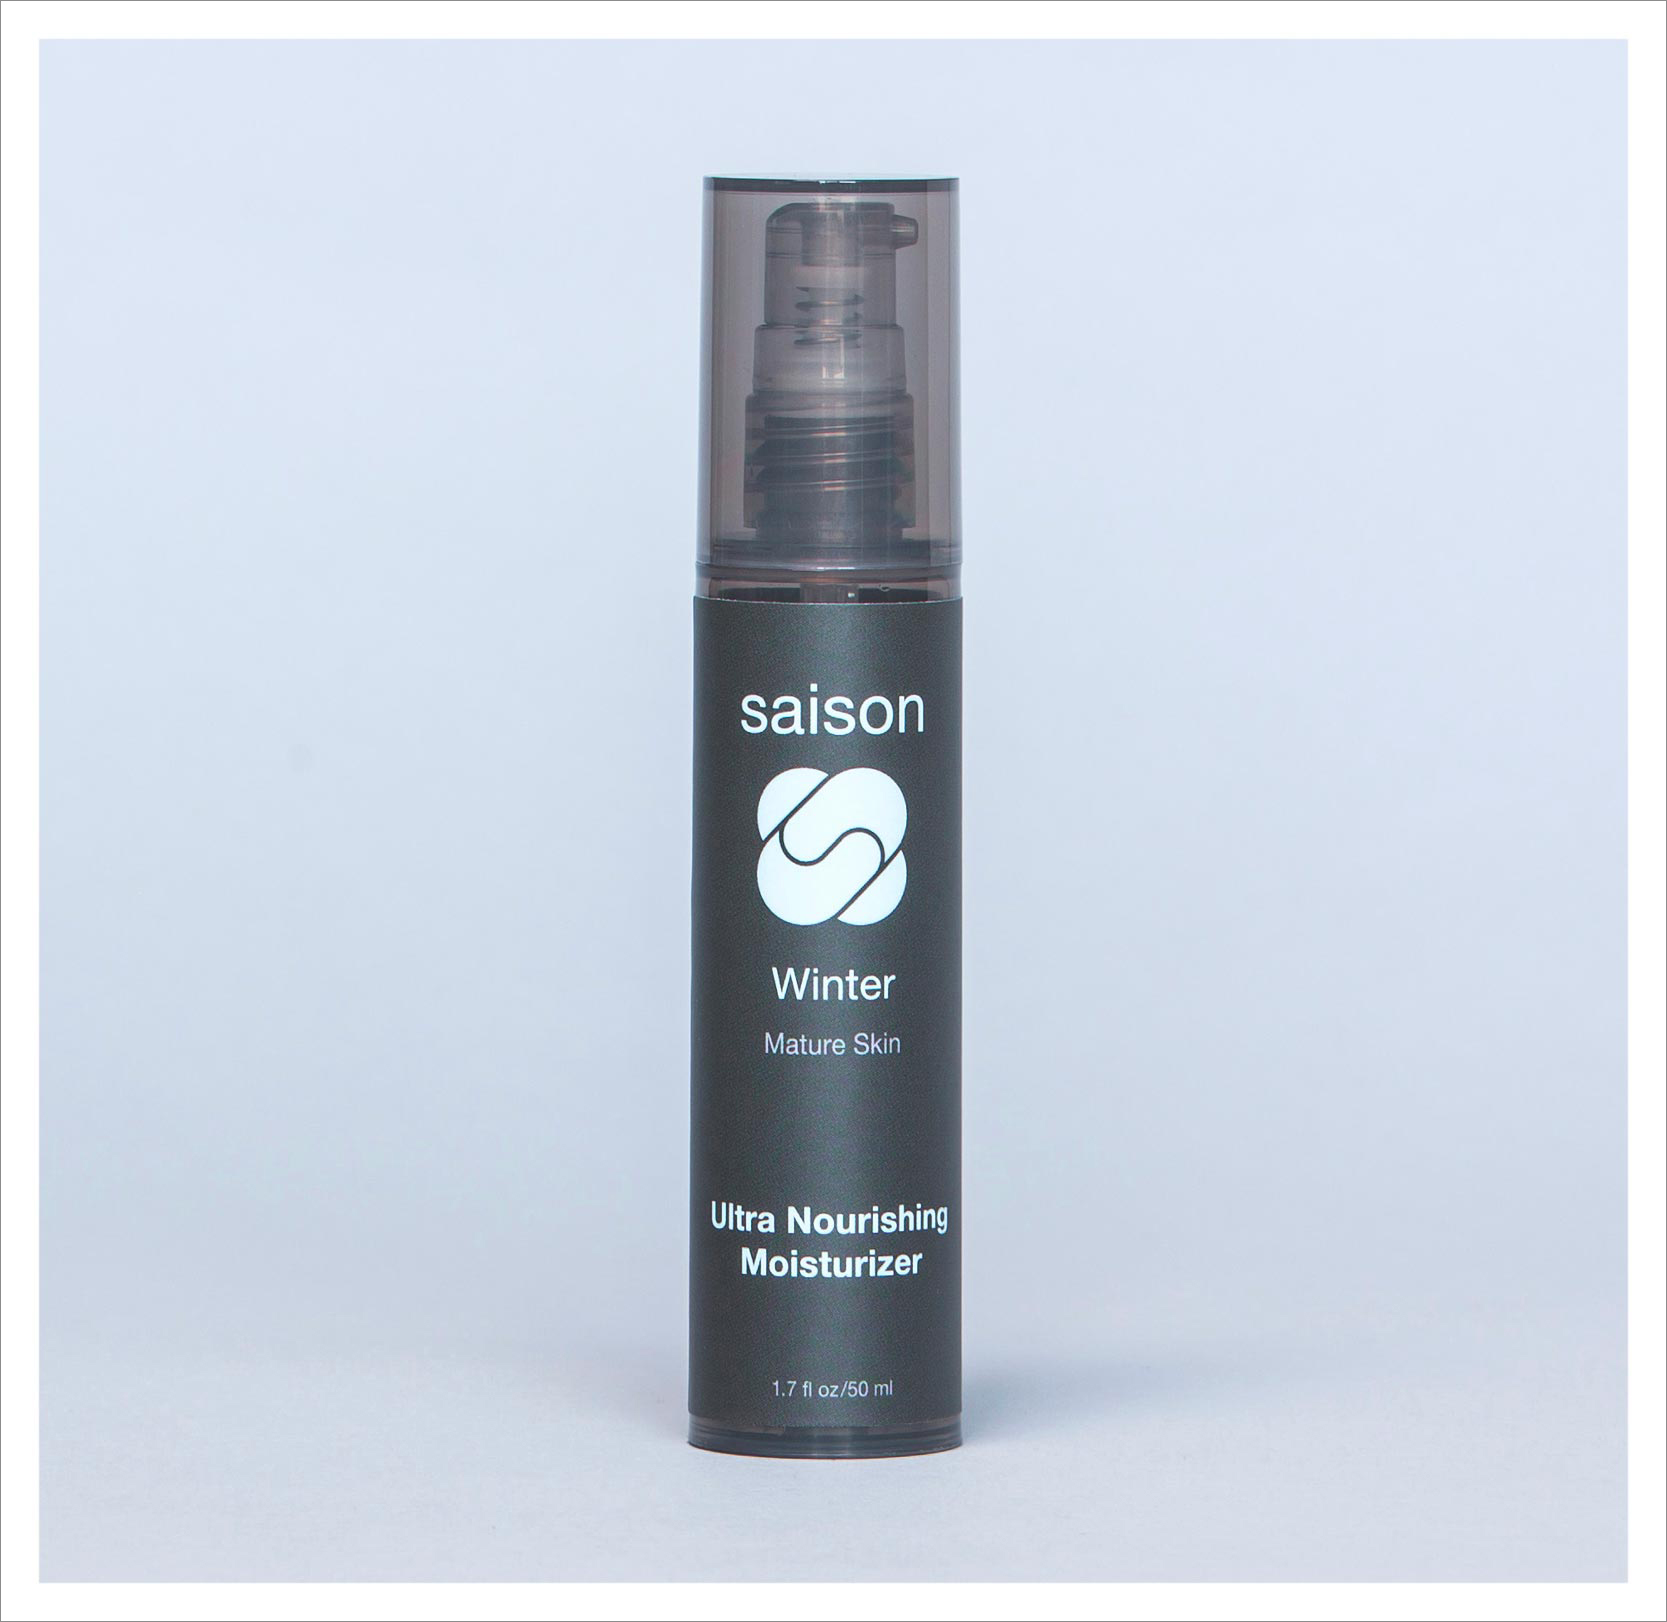 Saison Winter Ultra Nourishing Moisturizer